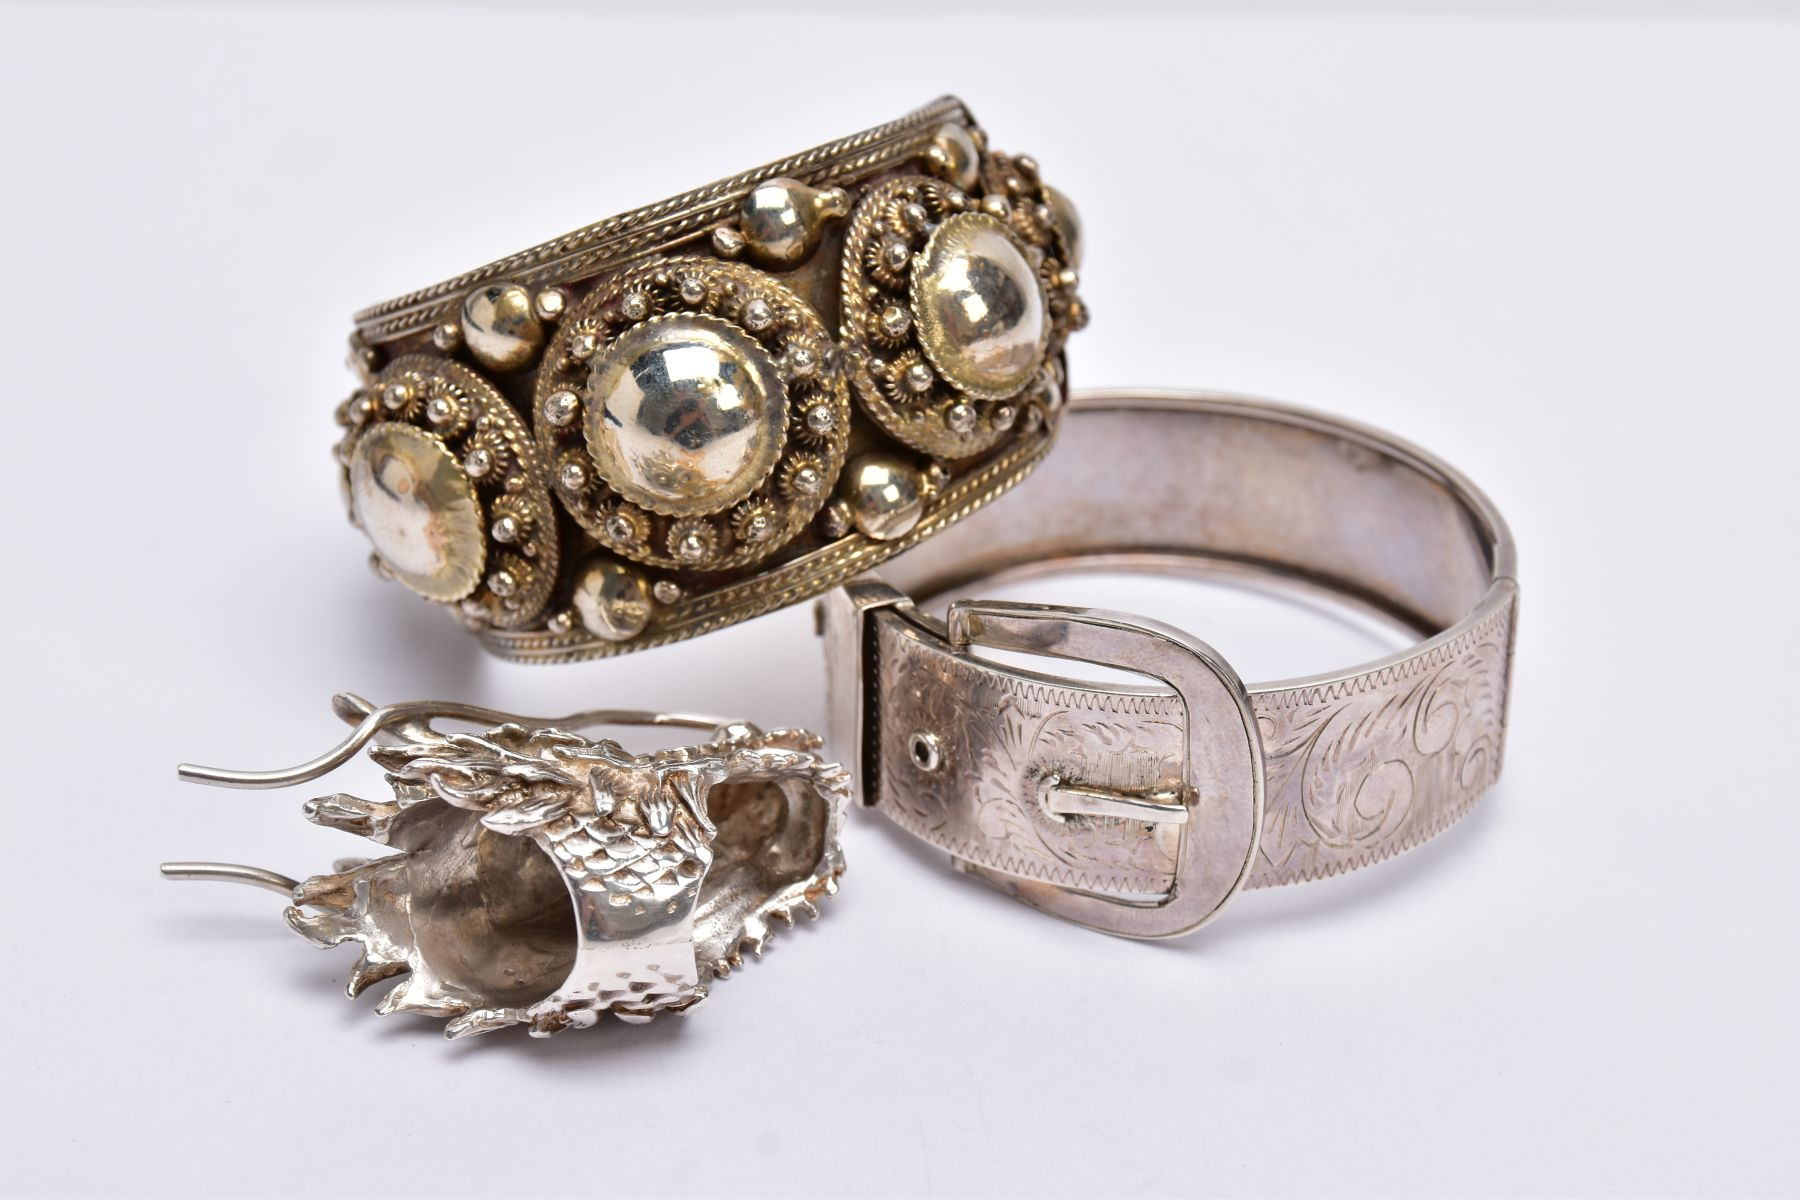 A WHITE METAL BANGLE, CUFF BANGLE AND A RING, the hinged bangle of a belt and buckle design, foliate - Image 4 of 5